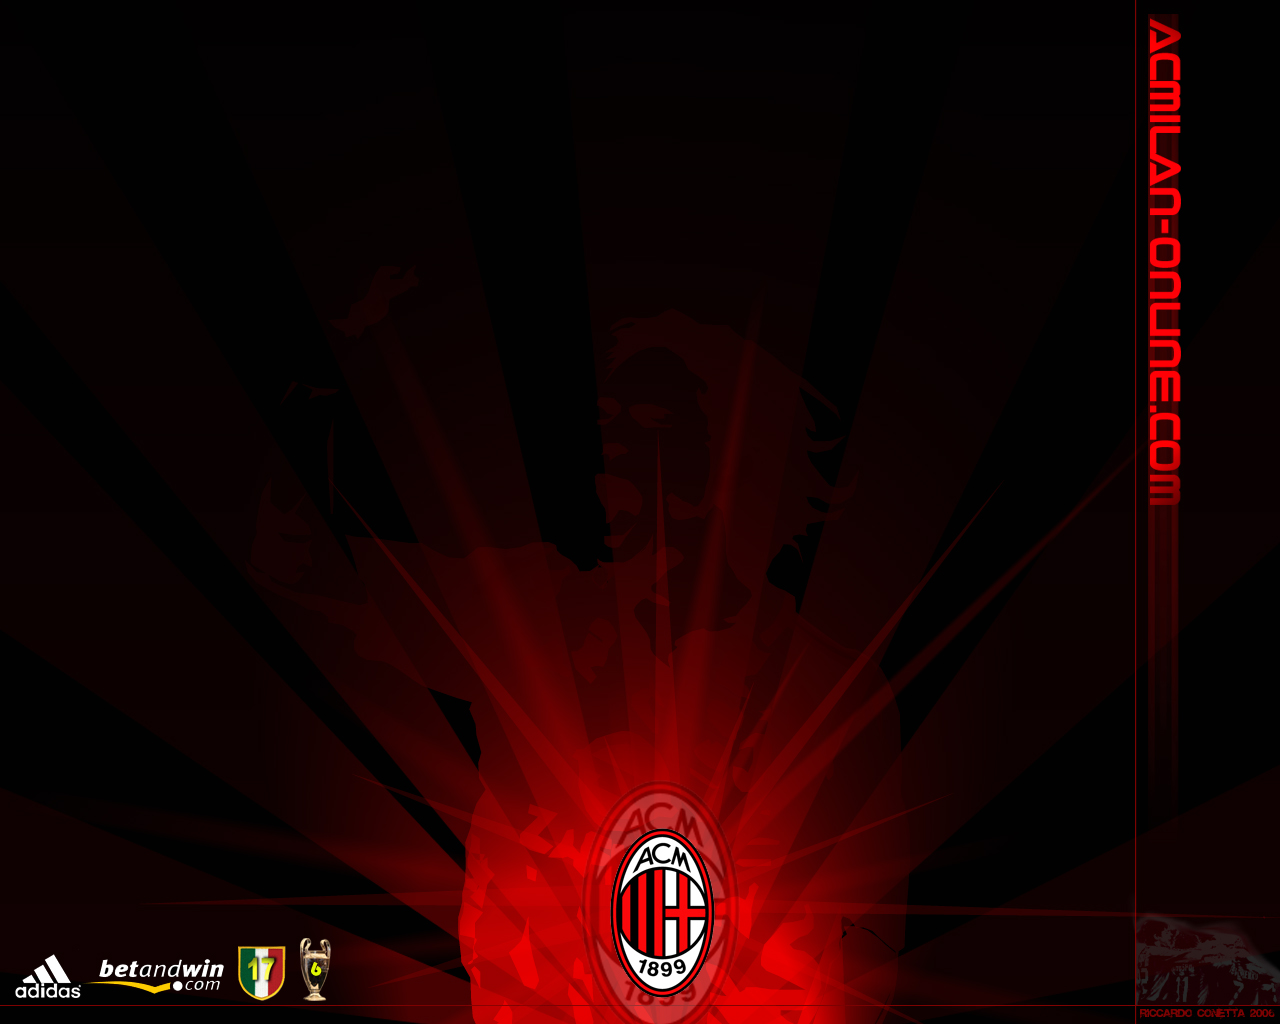 Hd wallpaper ac milan - Ac Milan Online Wallpaper